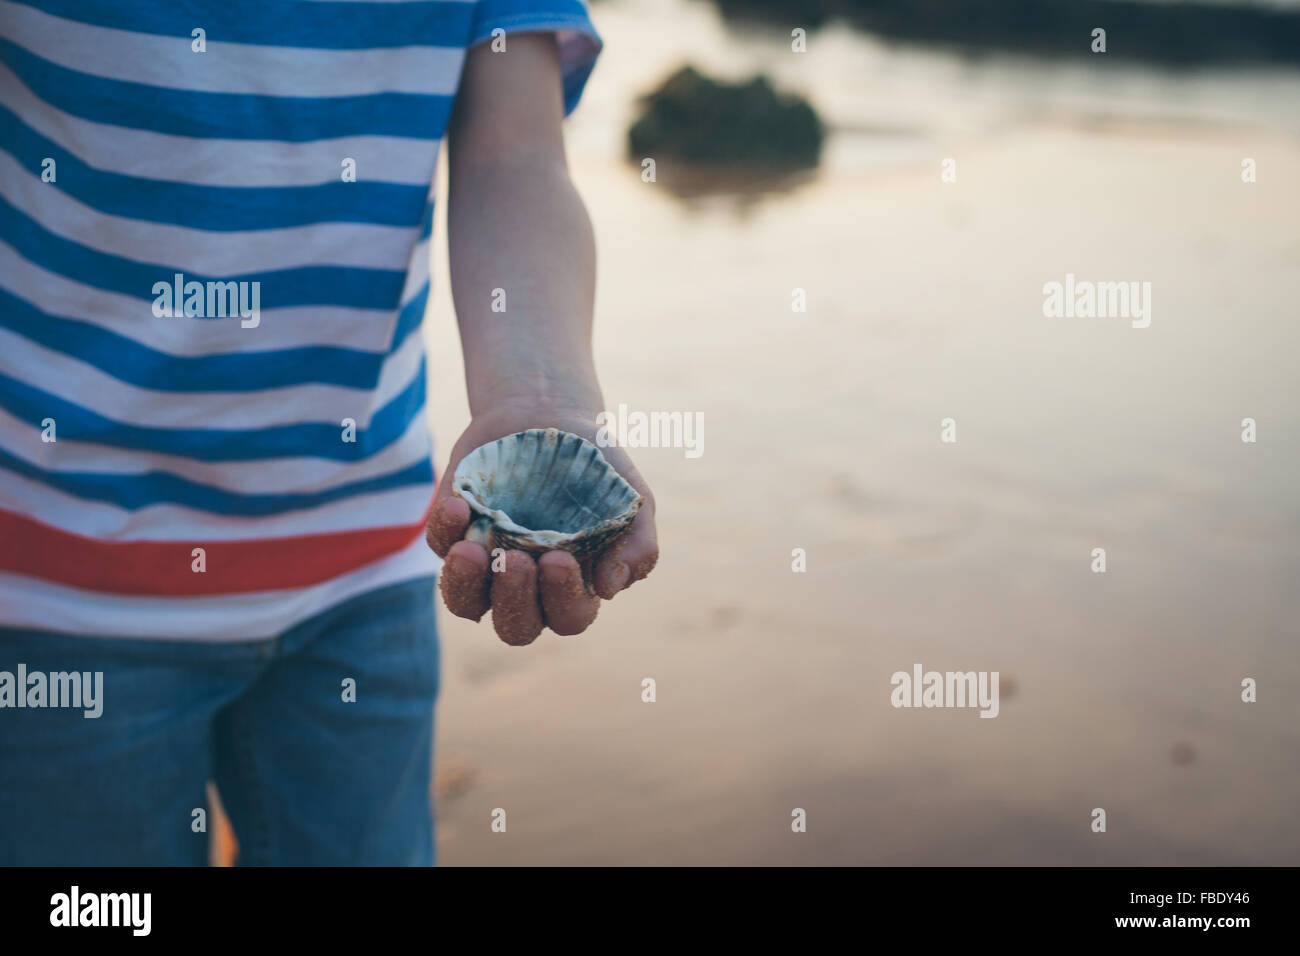 Mid Section View Of Boy Showing Seashell - Stock Image